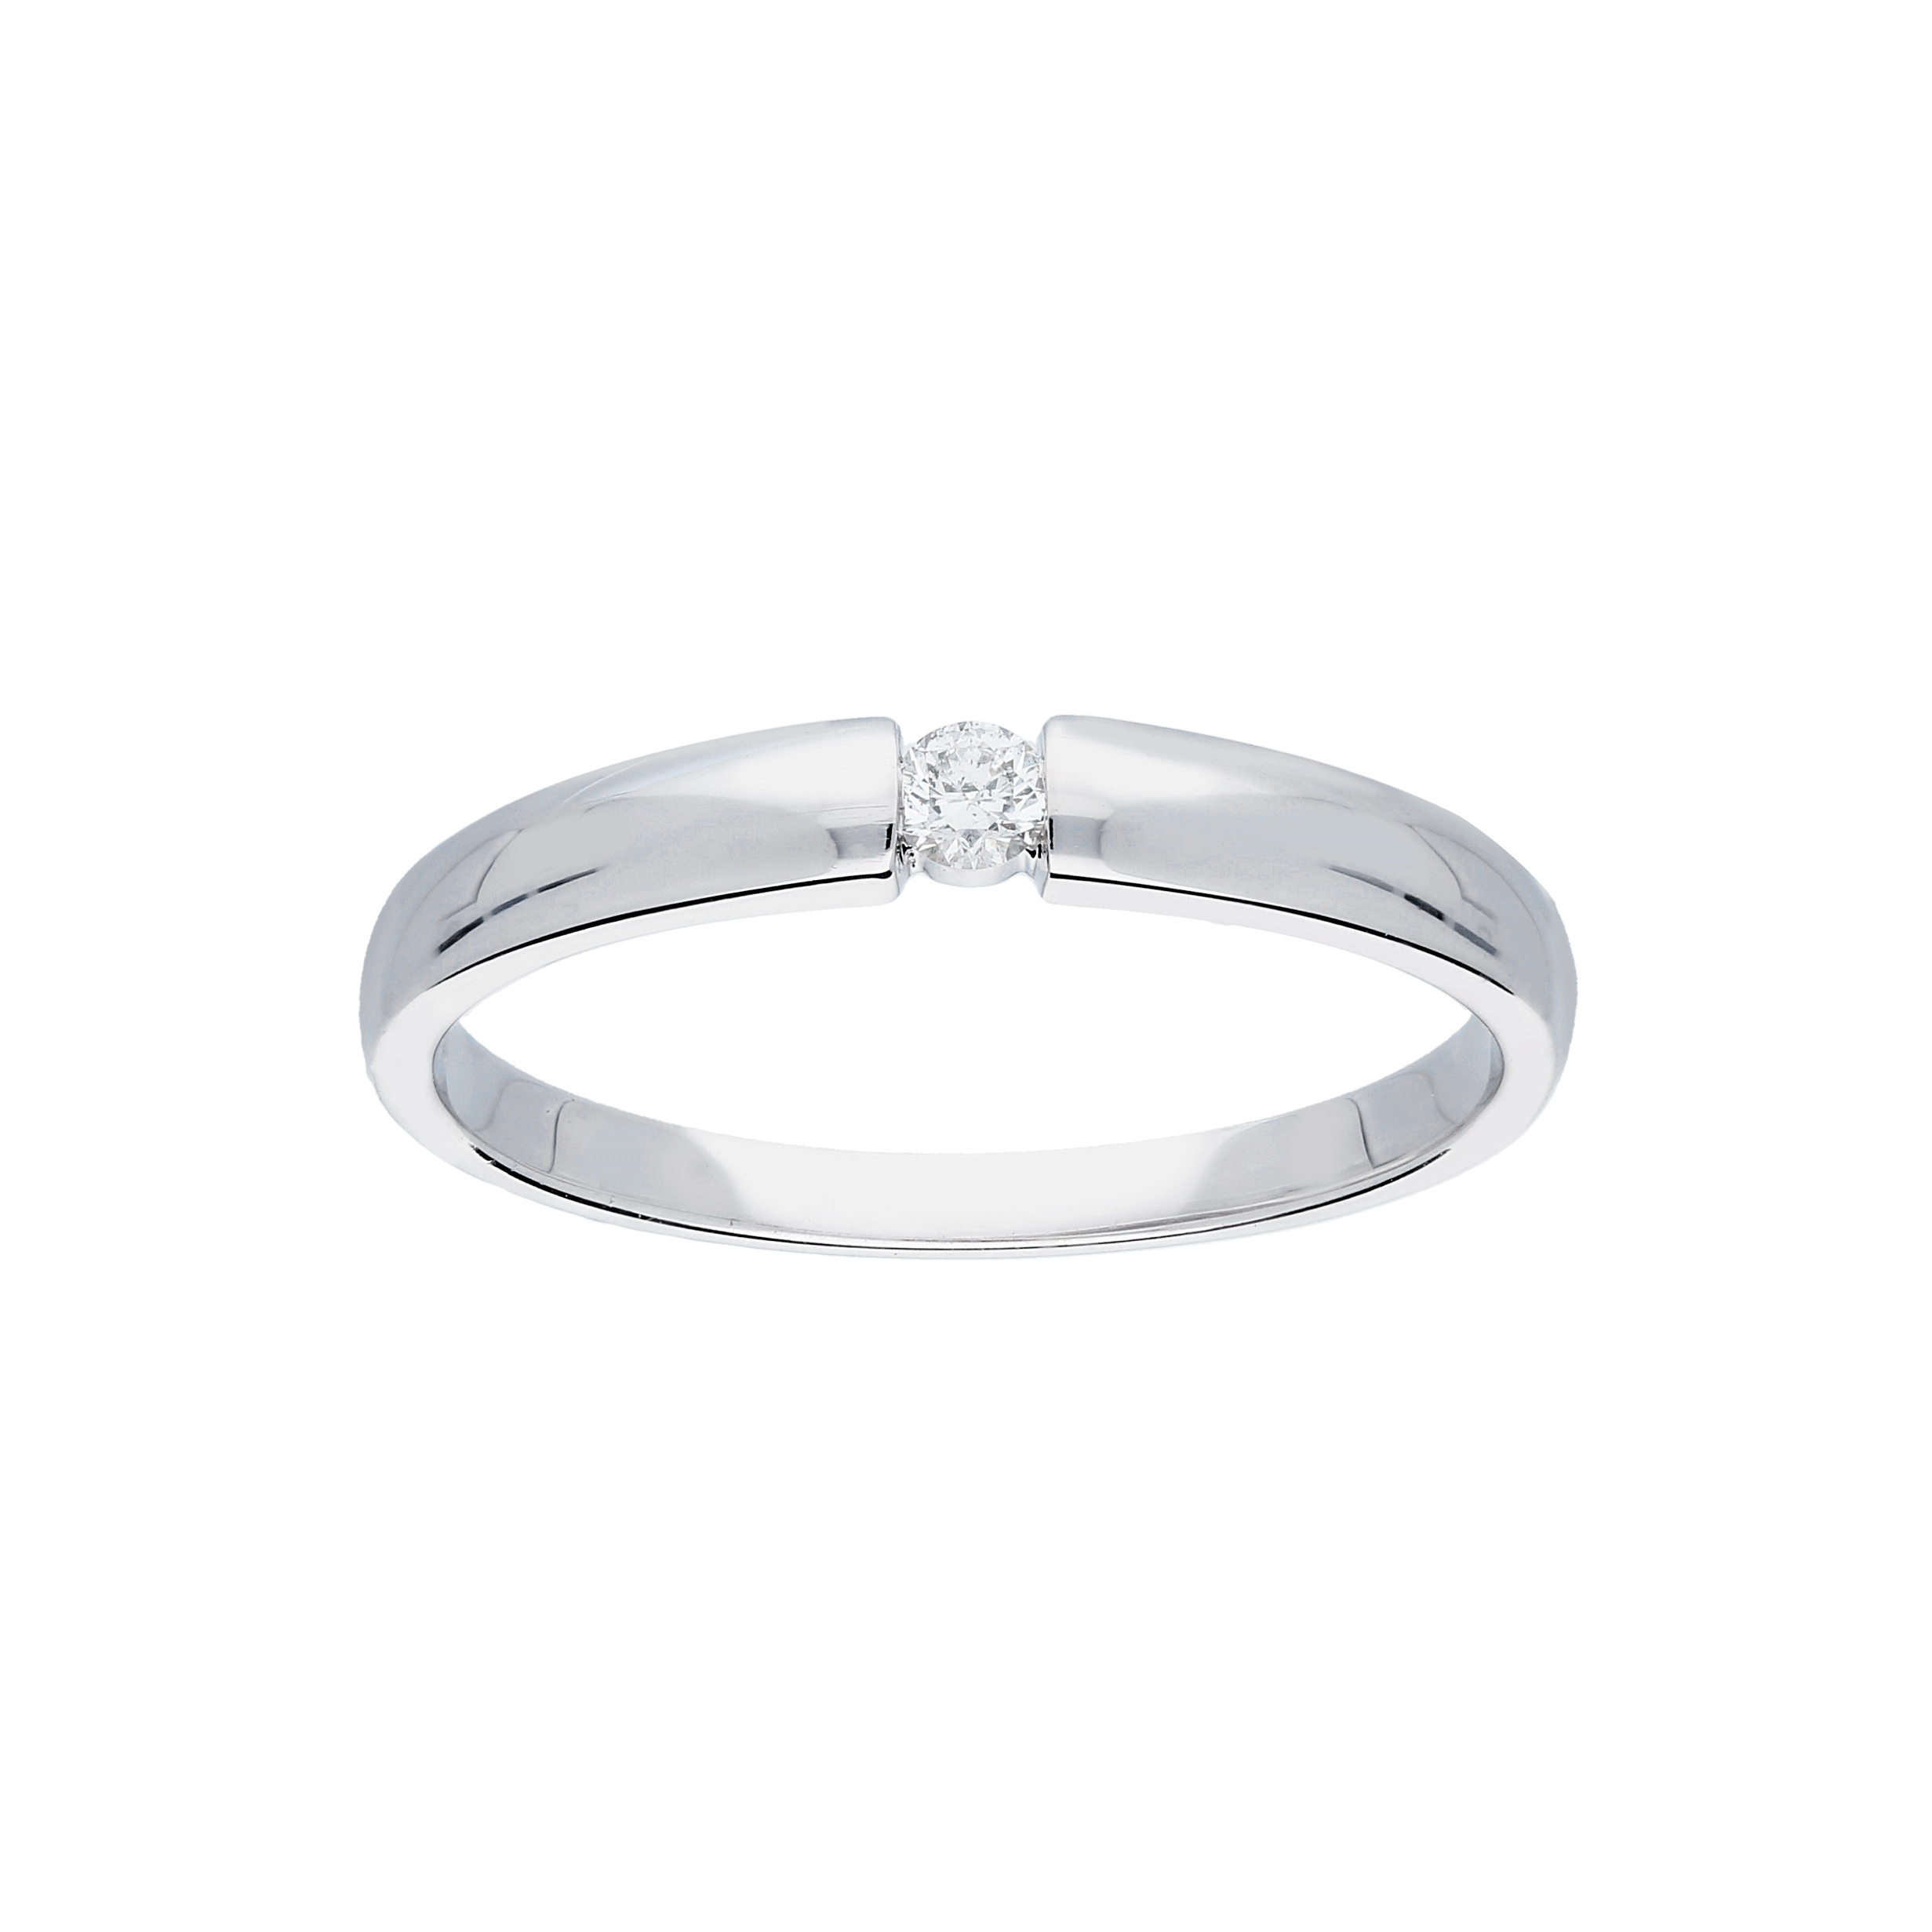 Glow Witgouden Ring Glanzend Diamant 1 0.06ct G si 214.3002.52